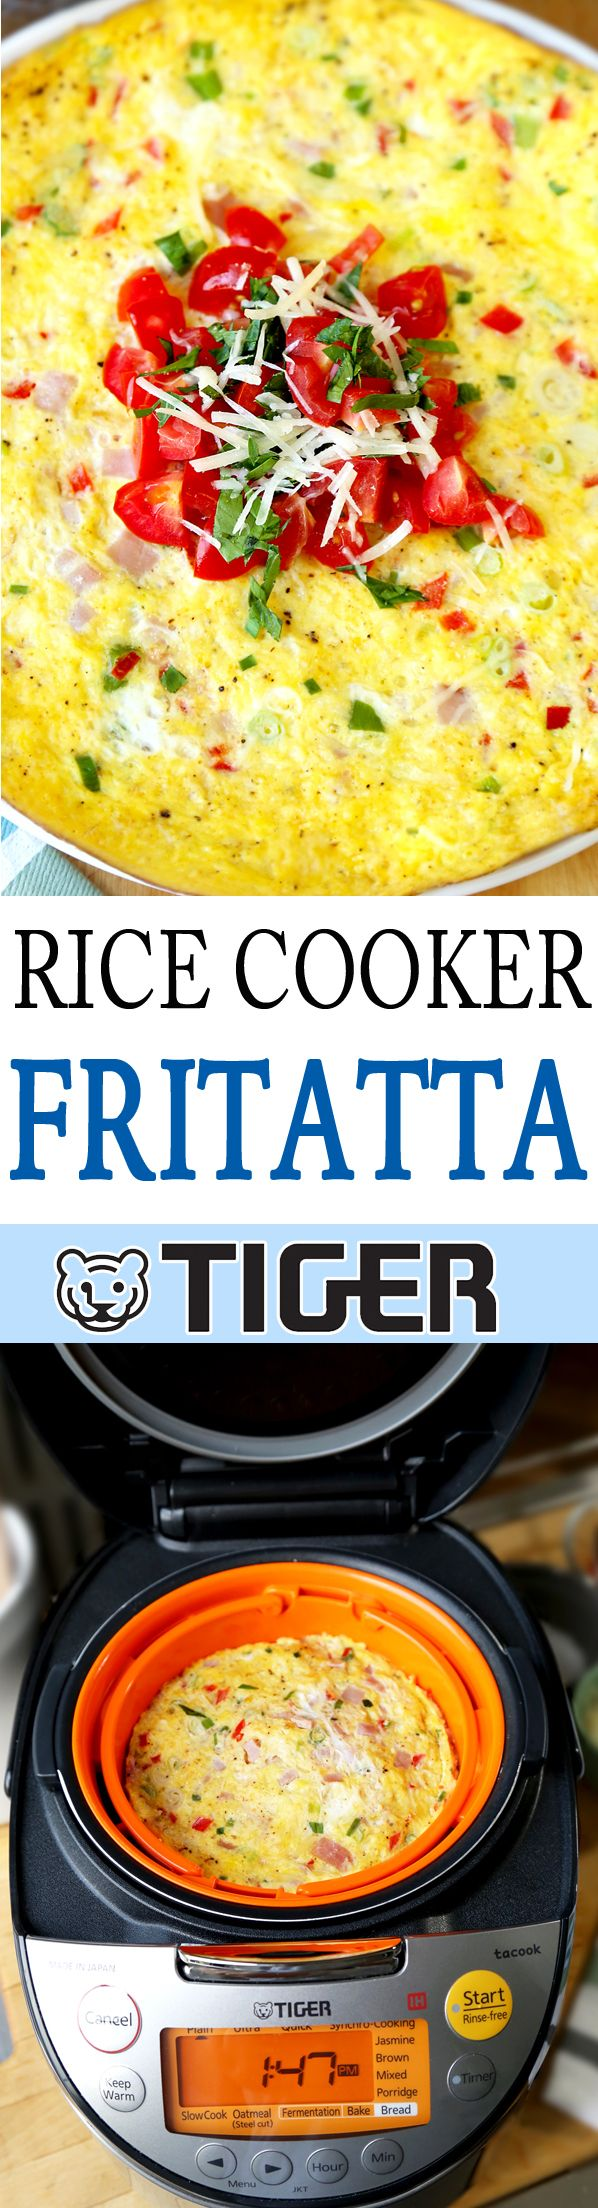 Frittata with Rice | Rice Cooker Recipe